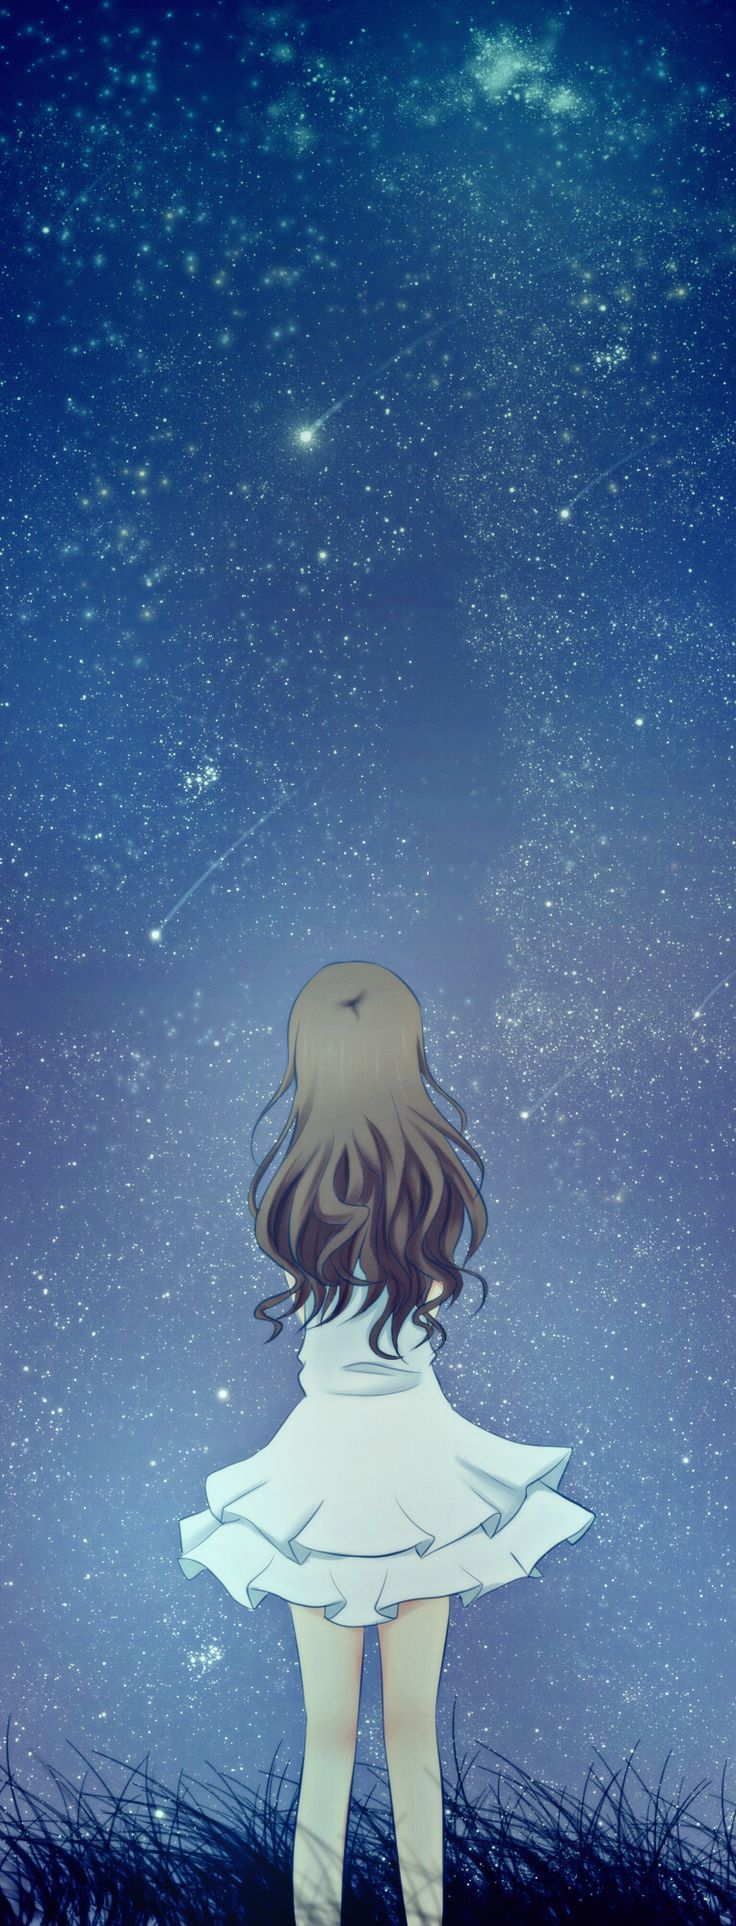 Anime Girl Looking At The Sky